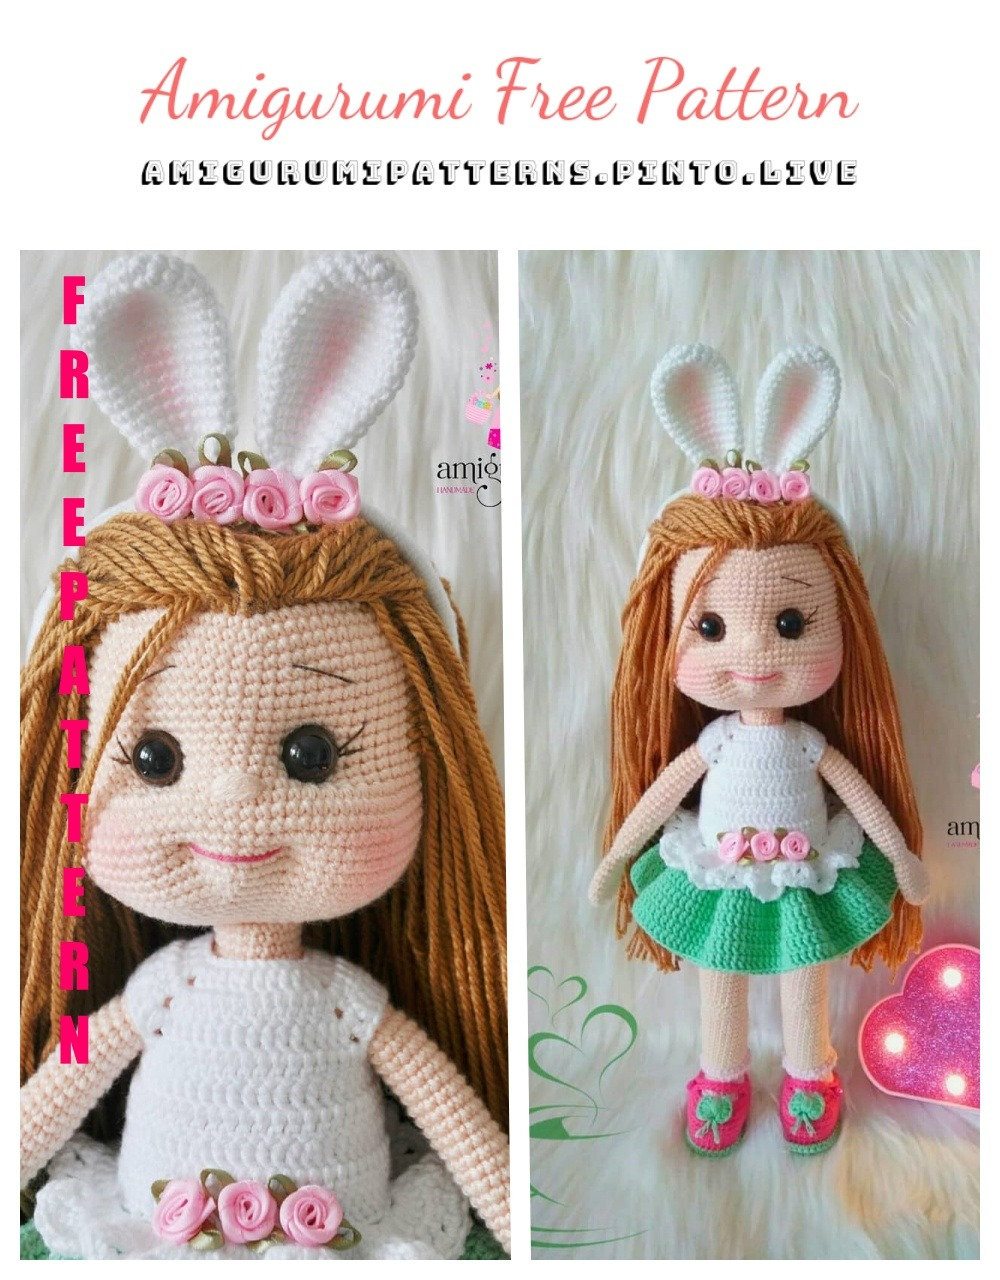 Free Crochet Patterns and Designs by LisaAuch: Little Crochet Red ... | 1280x1000